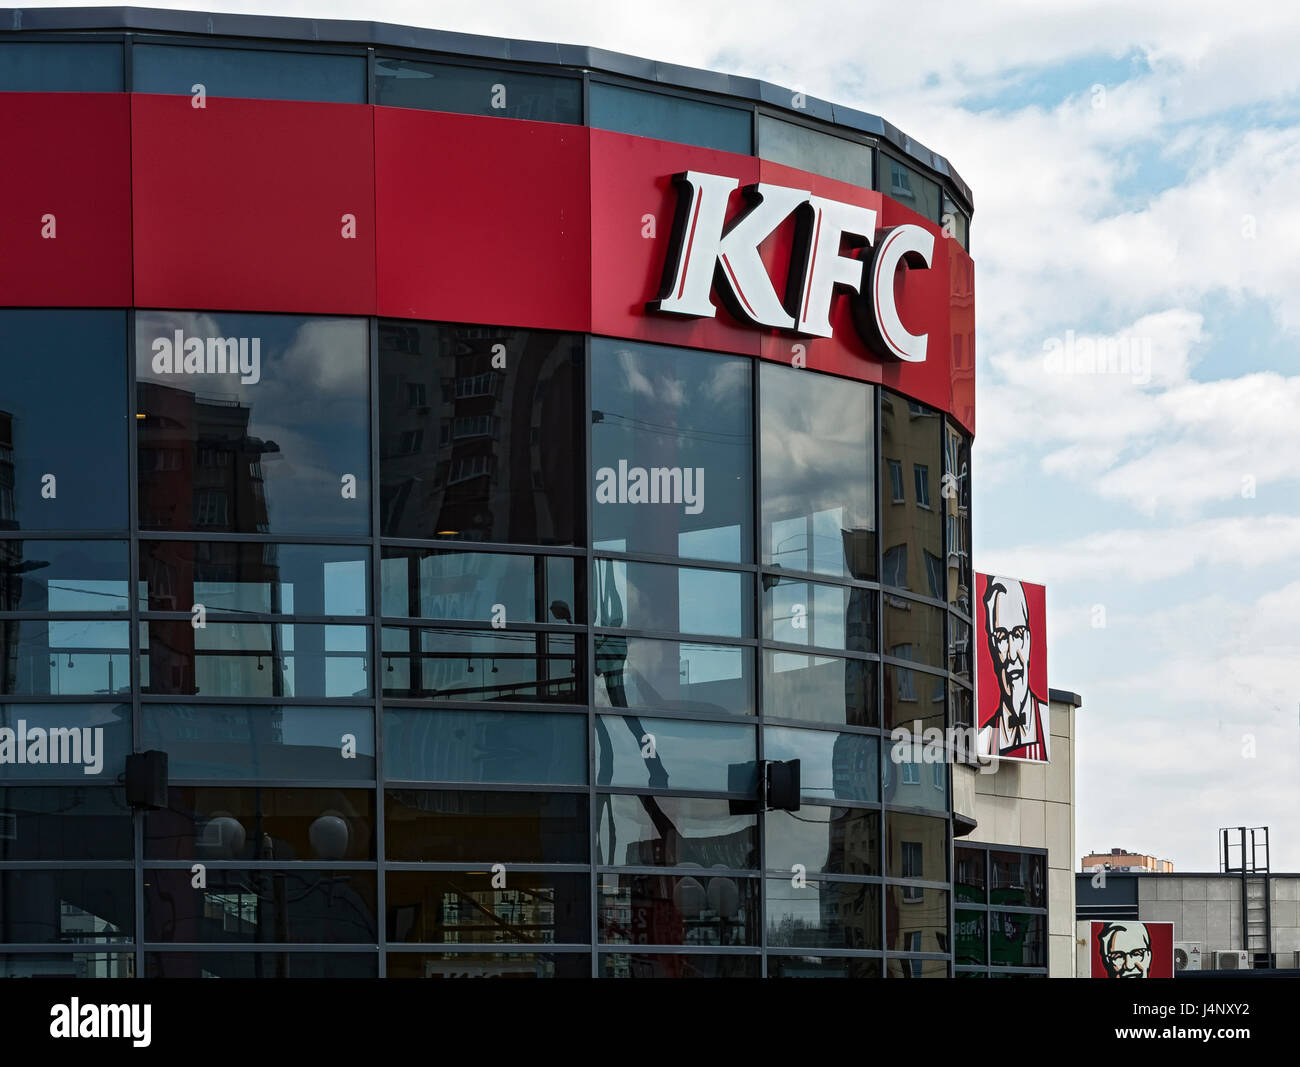 Restaurant Name Stockfotos & Restaurant Name Bilder - Alamy